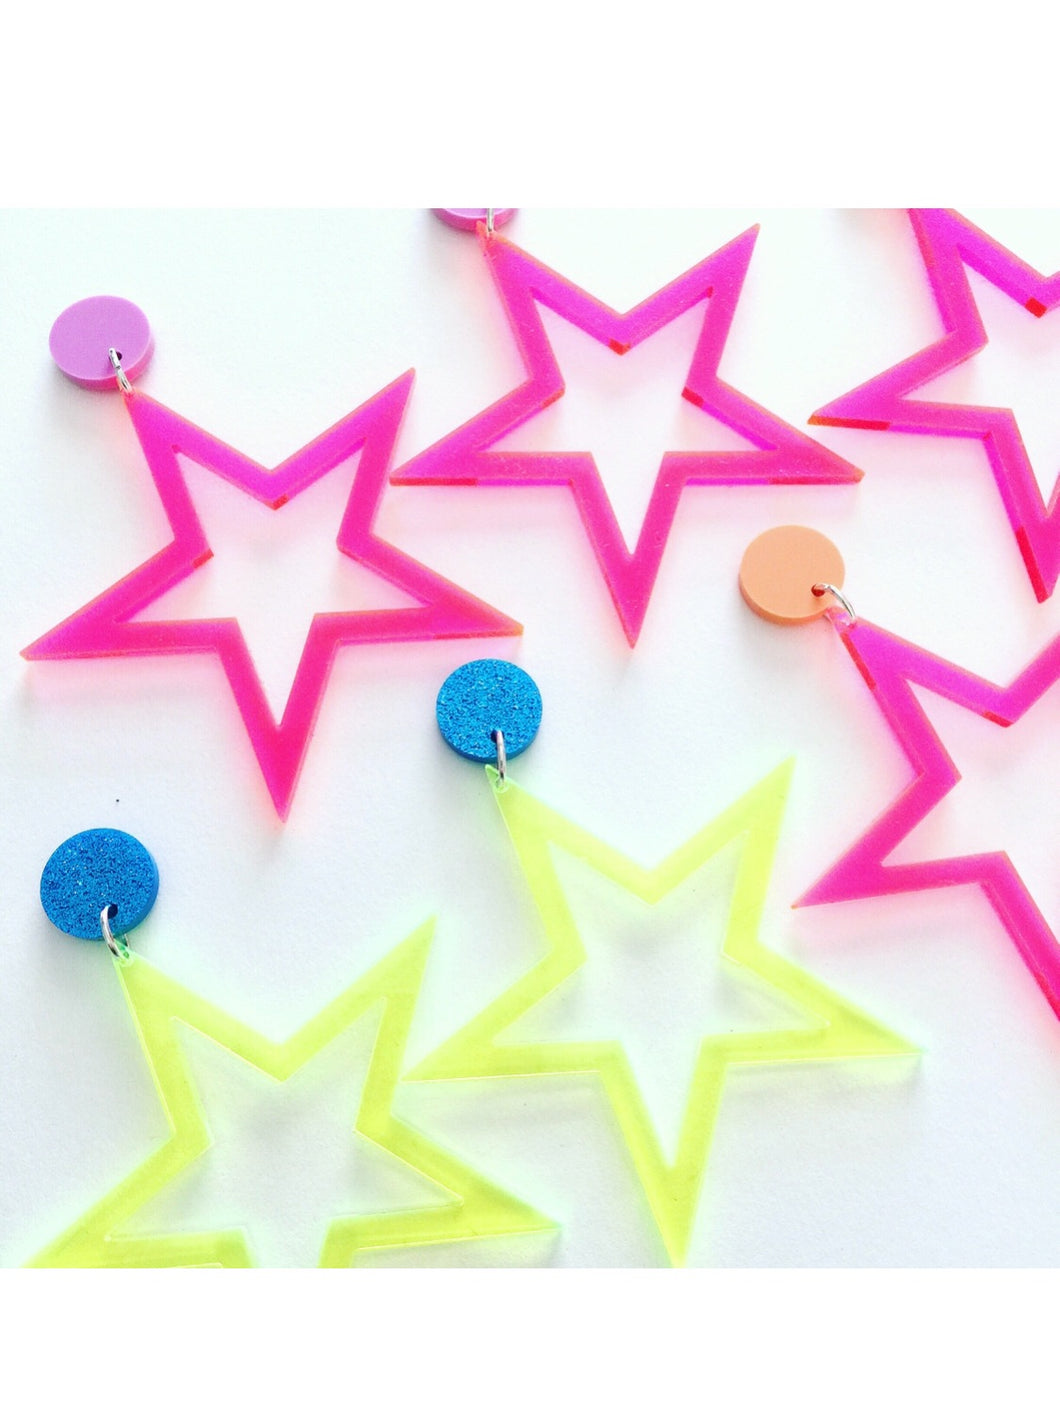 Rockstar Star Neon Pink Fluoro Acrylic Earrings